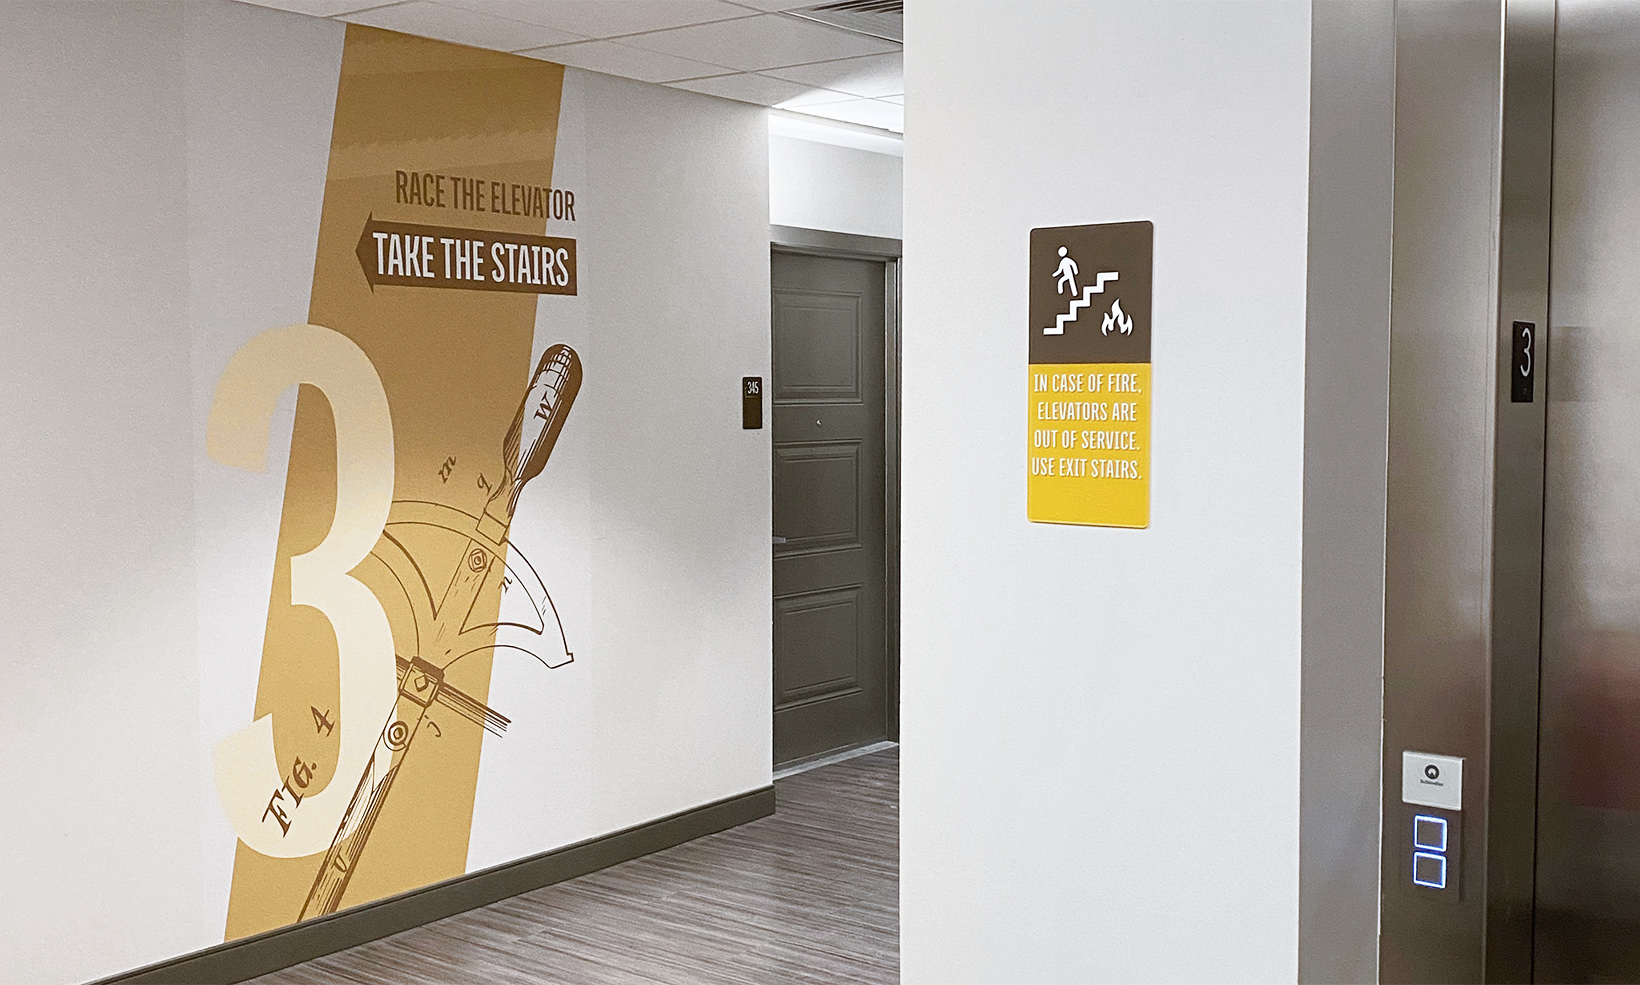 The wall murals in the The Forge Apartments work together with interior signage to create a full wayfinding system